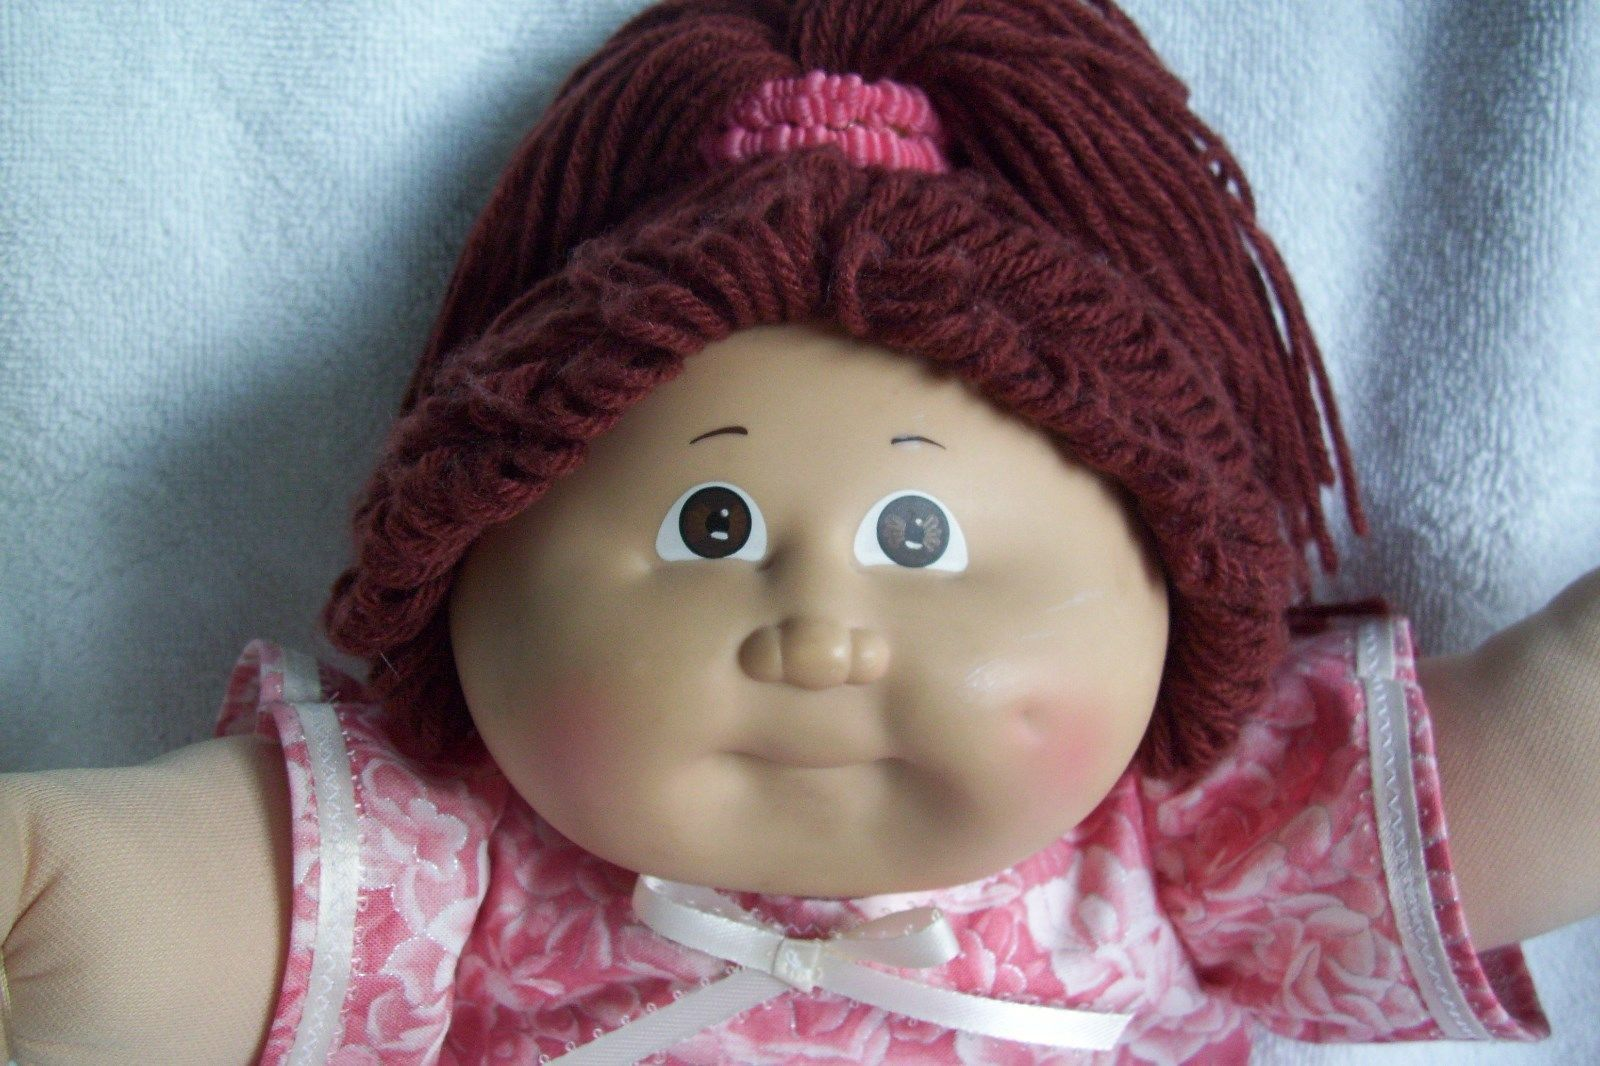 2 Cabbage Patch Dolls One 1982 Cpk And One 25th Anniversary Lamb Doll Lot Picclick Com Cabbage Patch Dolls Cabbage Patch Kids Dolls Cabbage Patch Kids